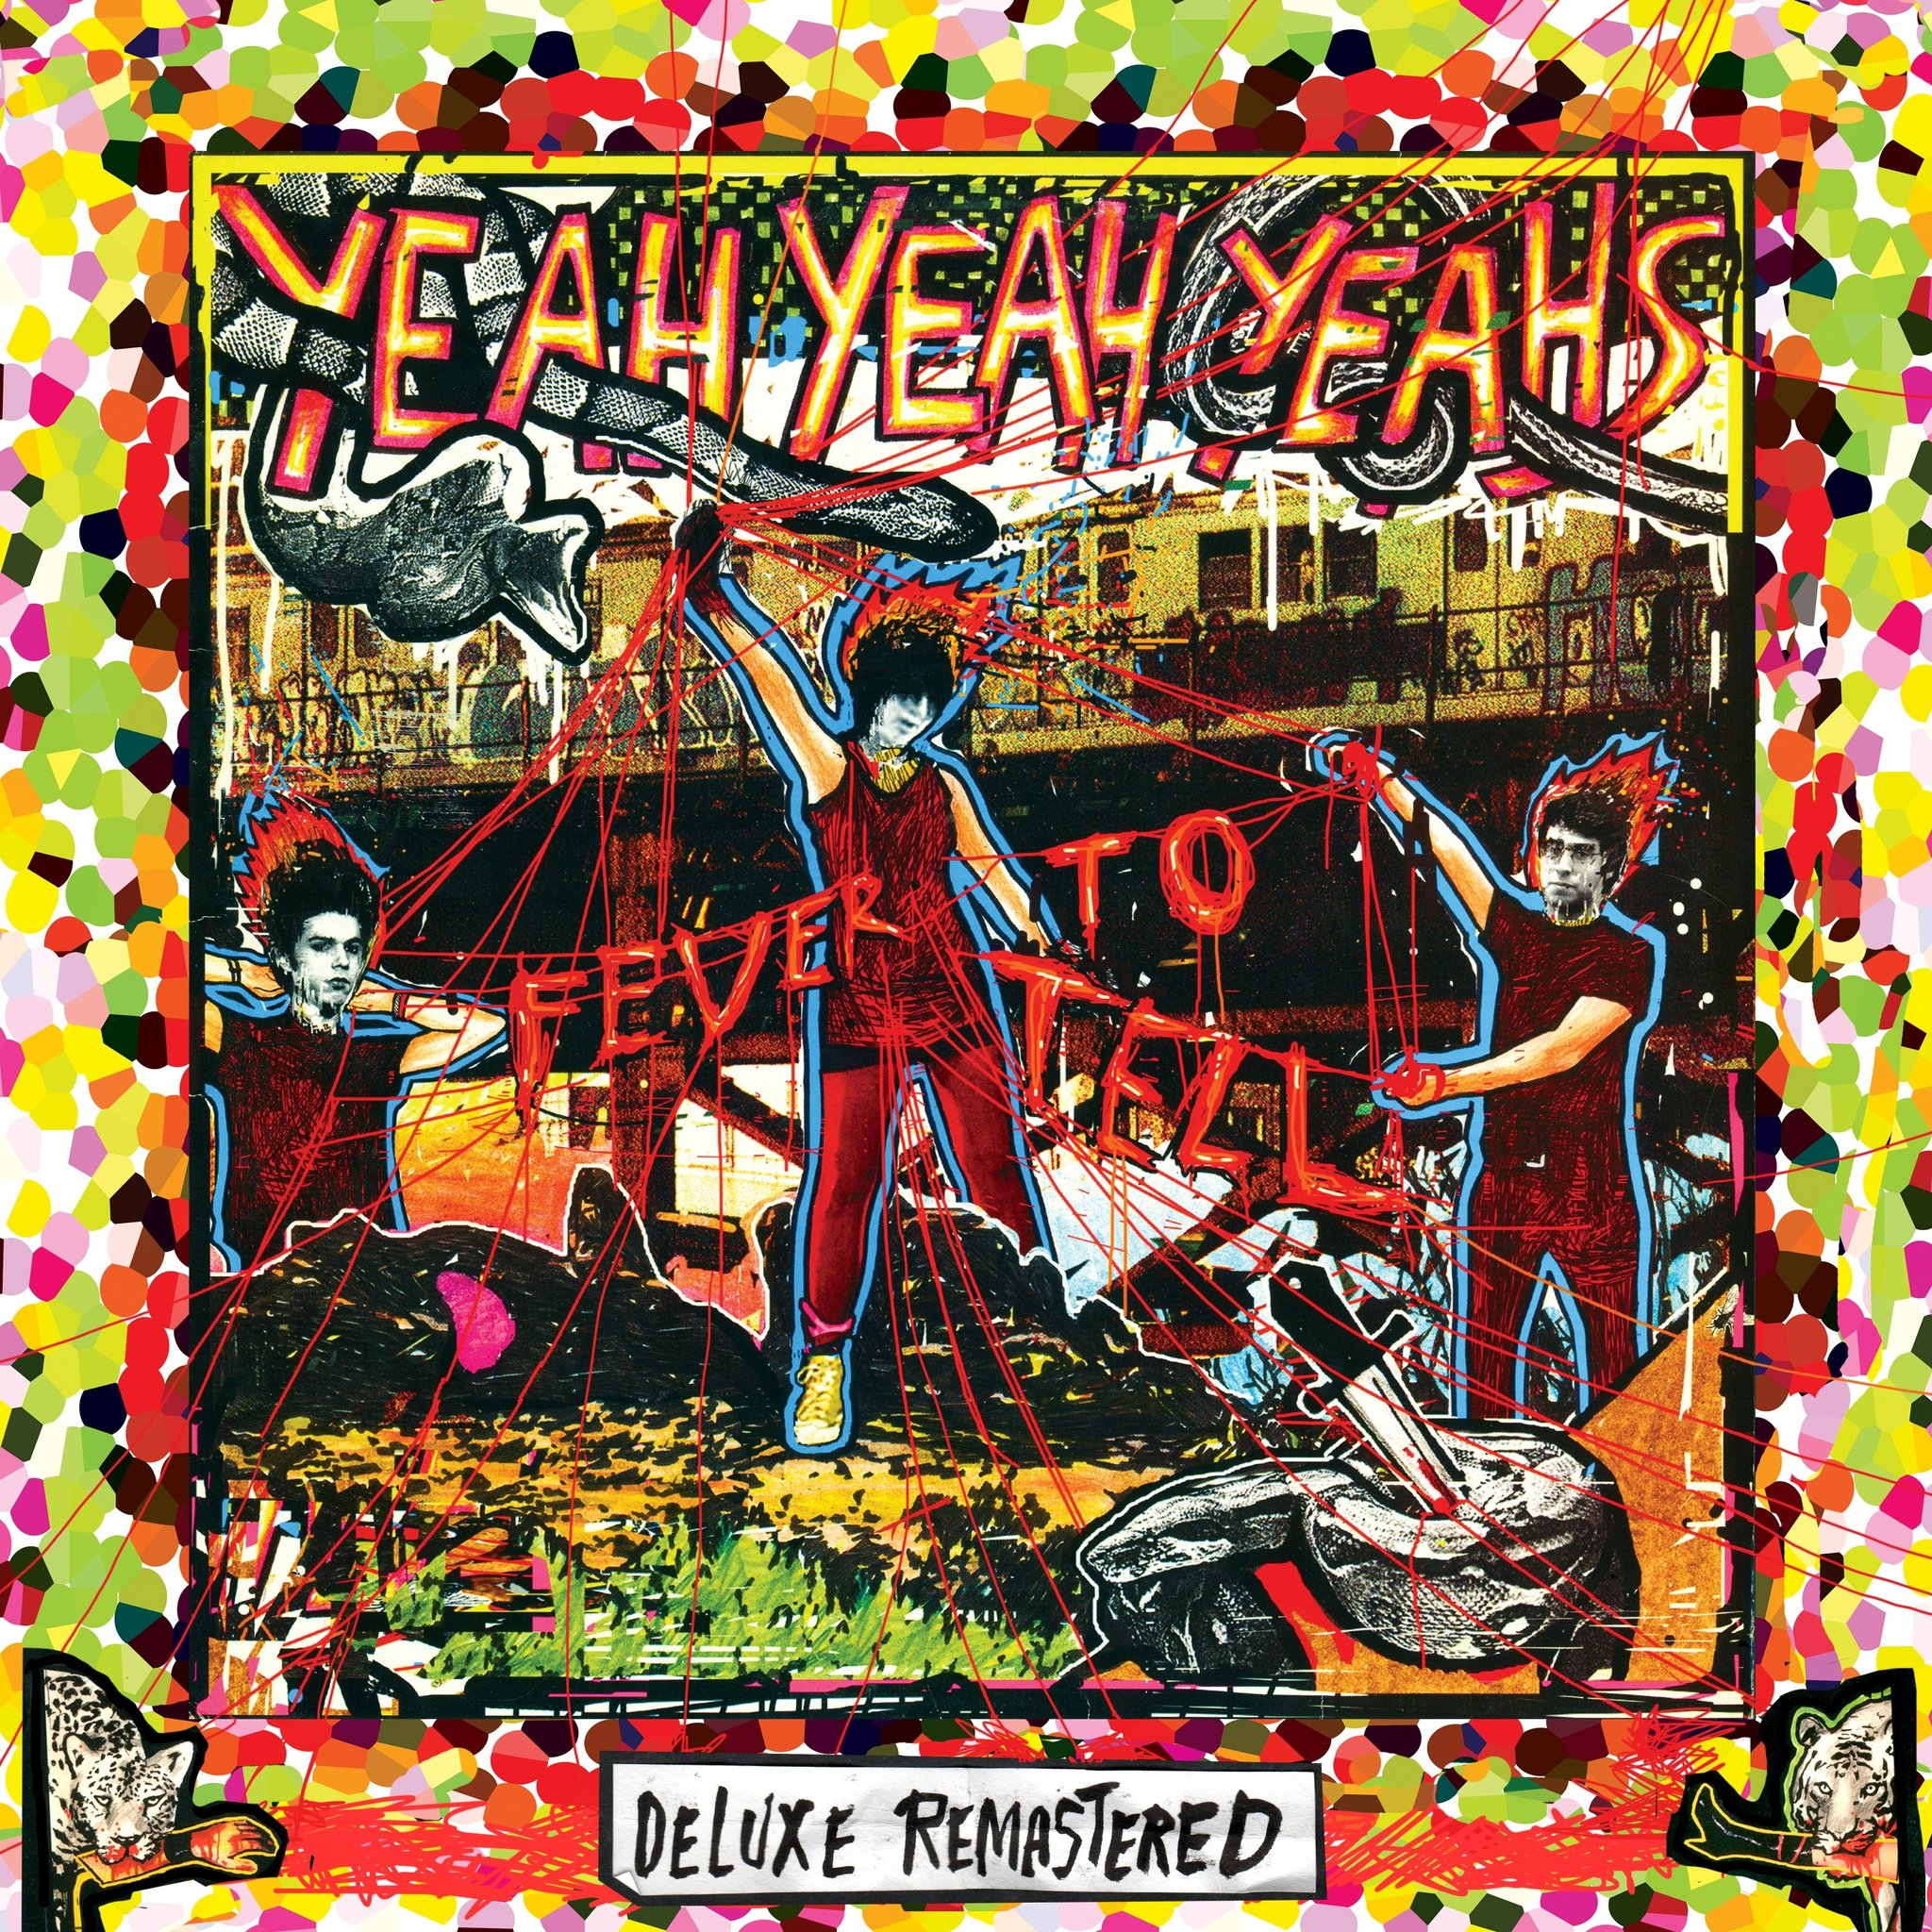 yyy deluxe c5eea859 824a 44f7 9897 f30cd9428c75 2048x2048 Yeah Yeah Yeahs announce Fever to Tell deluxe box set, share previously unheard track Shake It: Stream